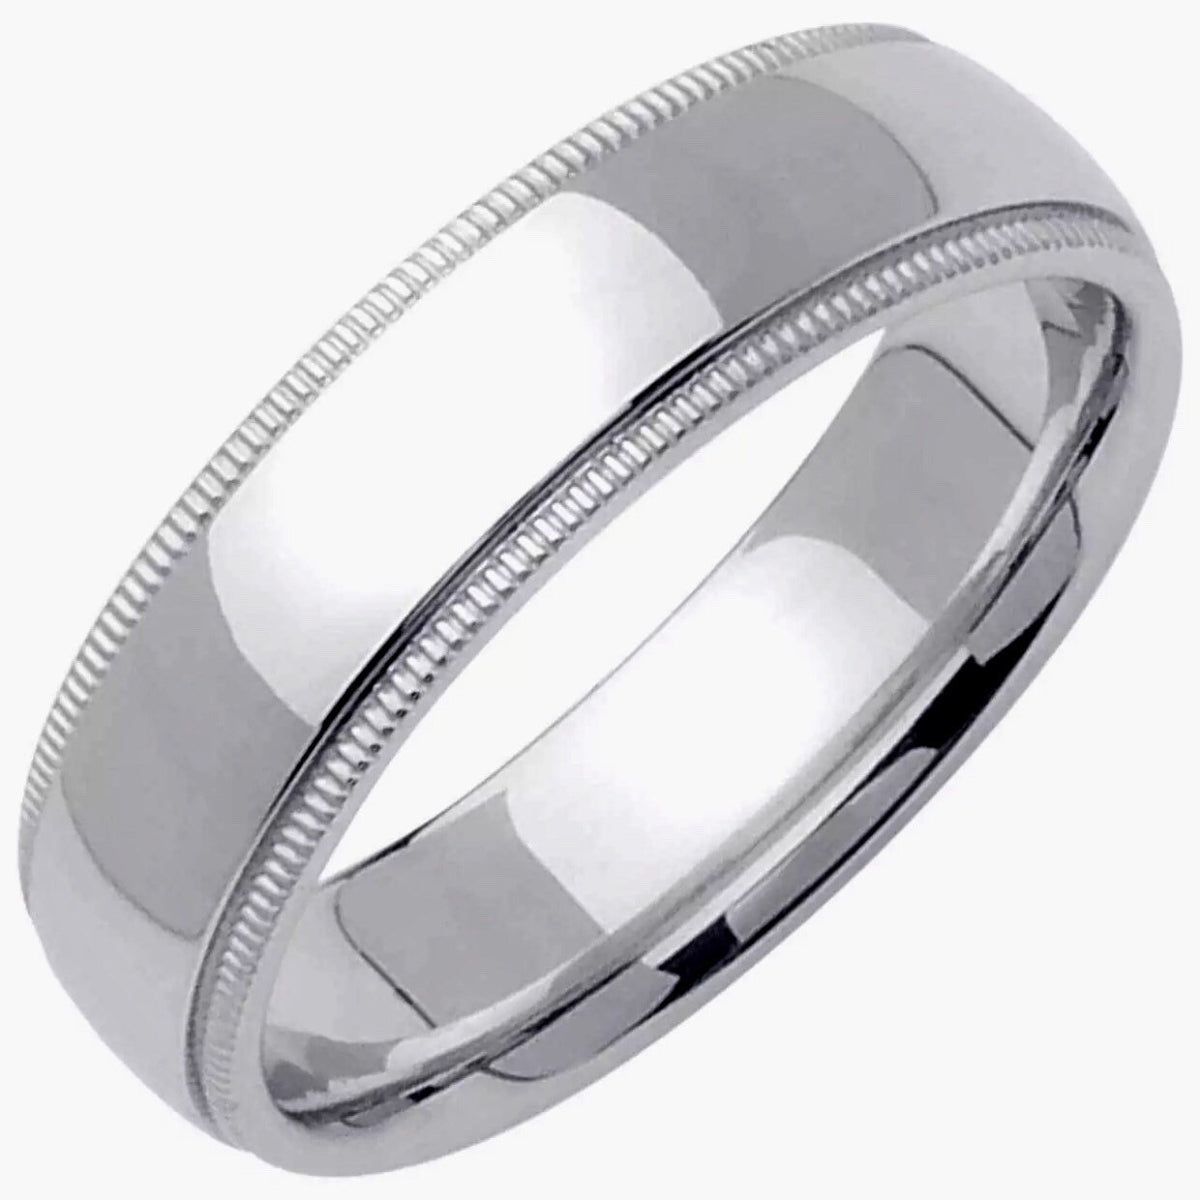 5mm Size 8 - Handcrafted solid 925 Silver high polished Rhodium plain wedding Ring Band